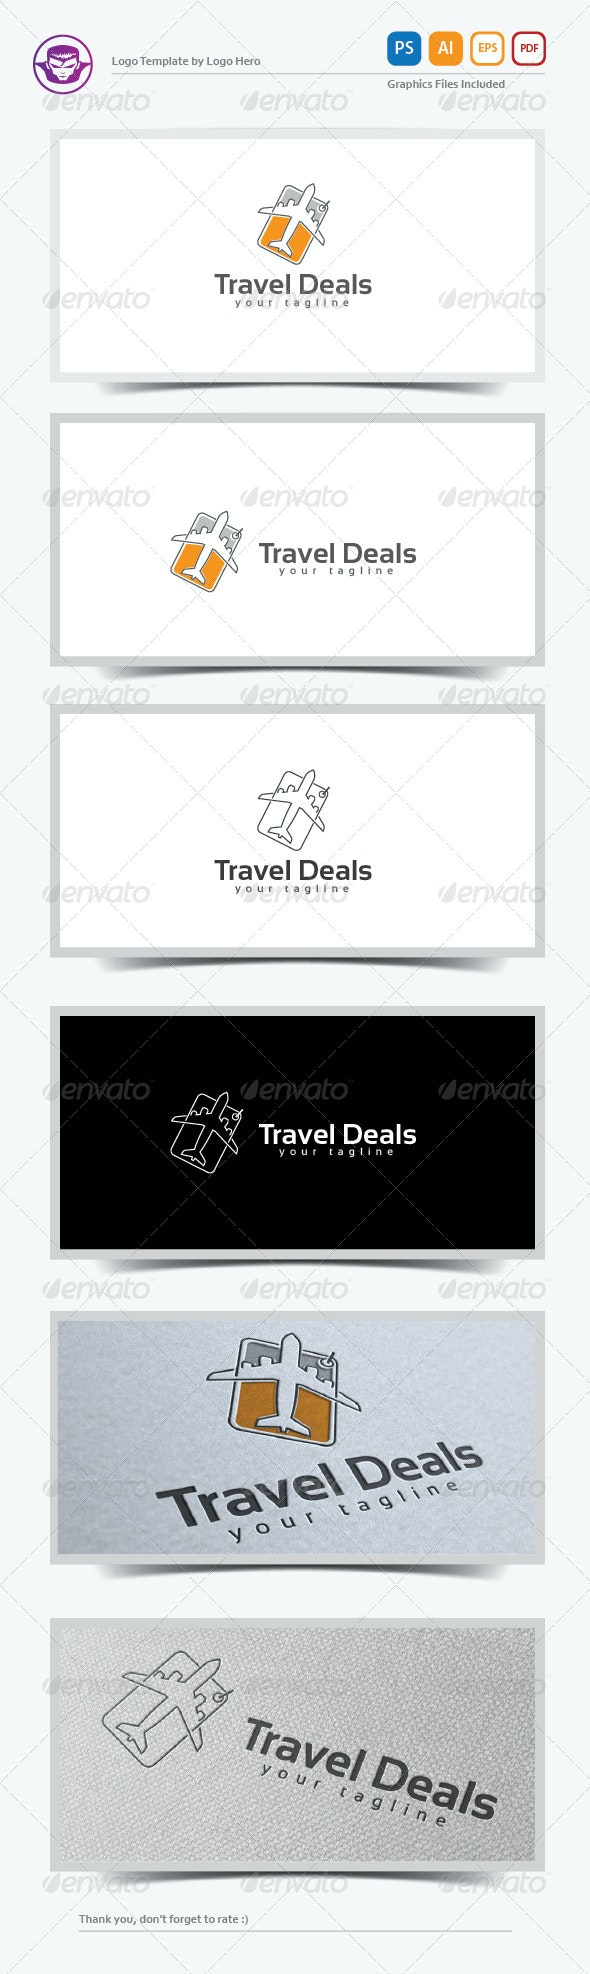 Travel Deal Logo Template - Objects Logo Templates